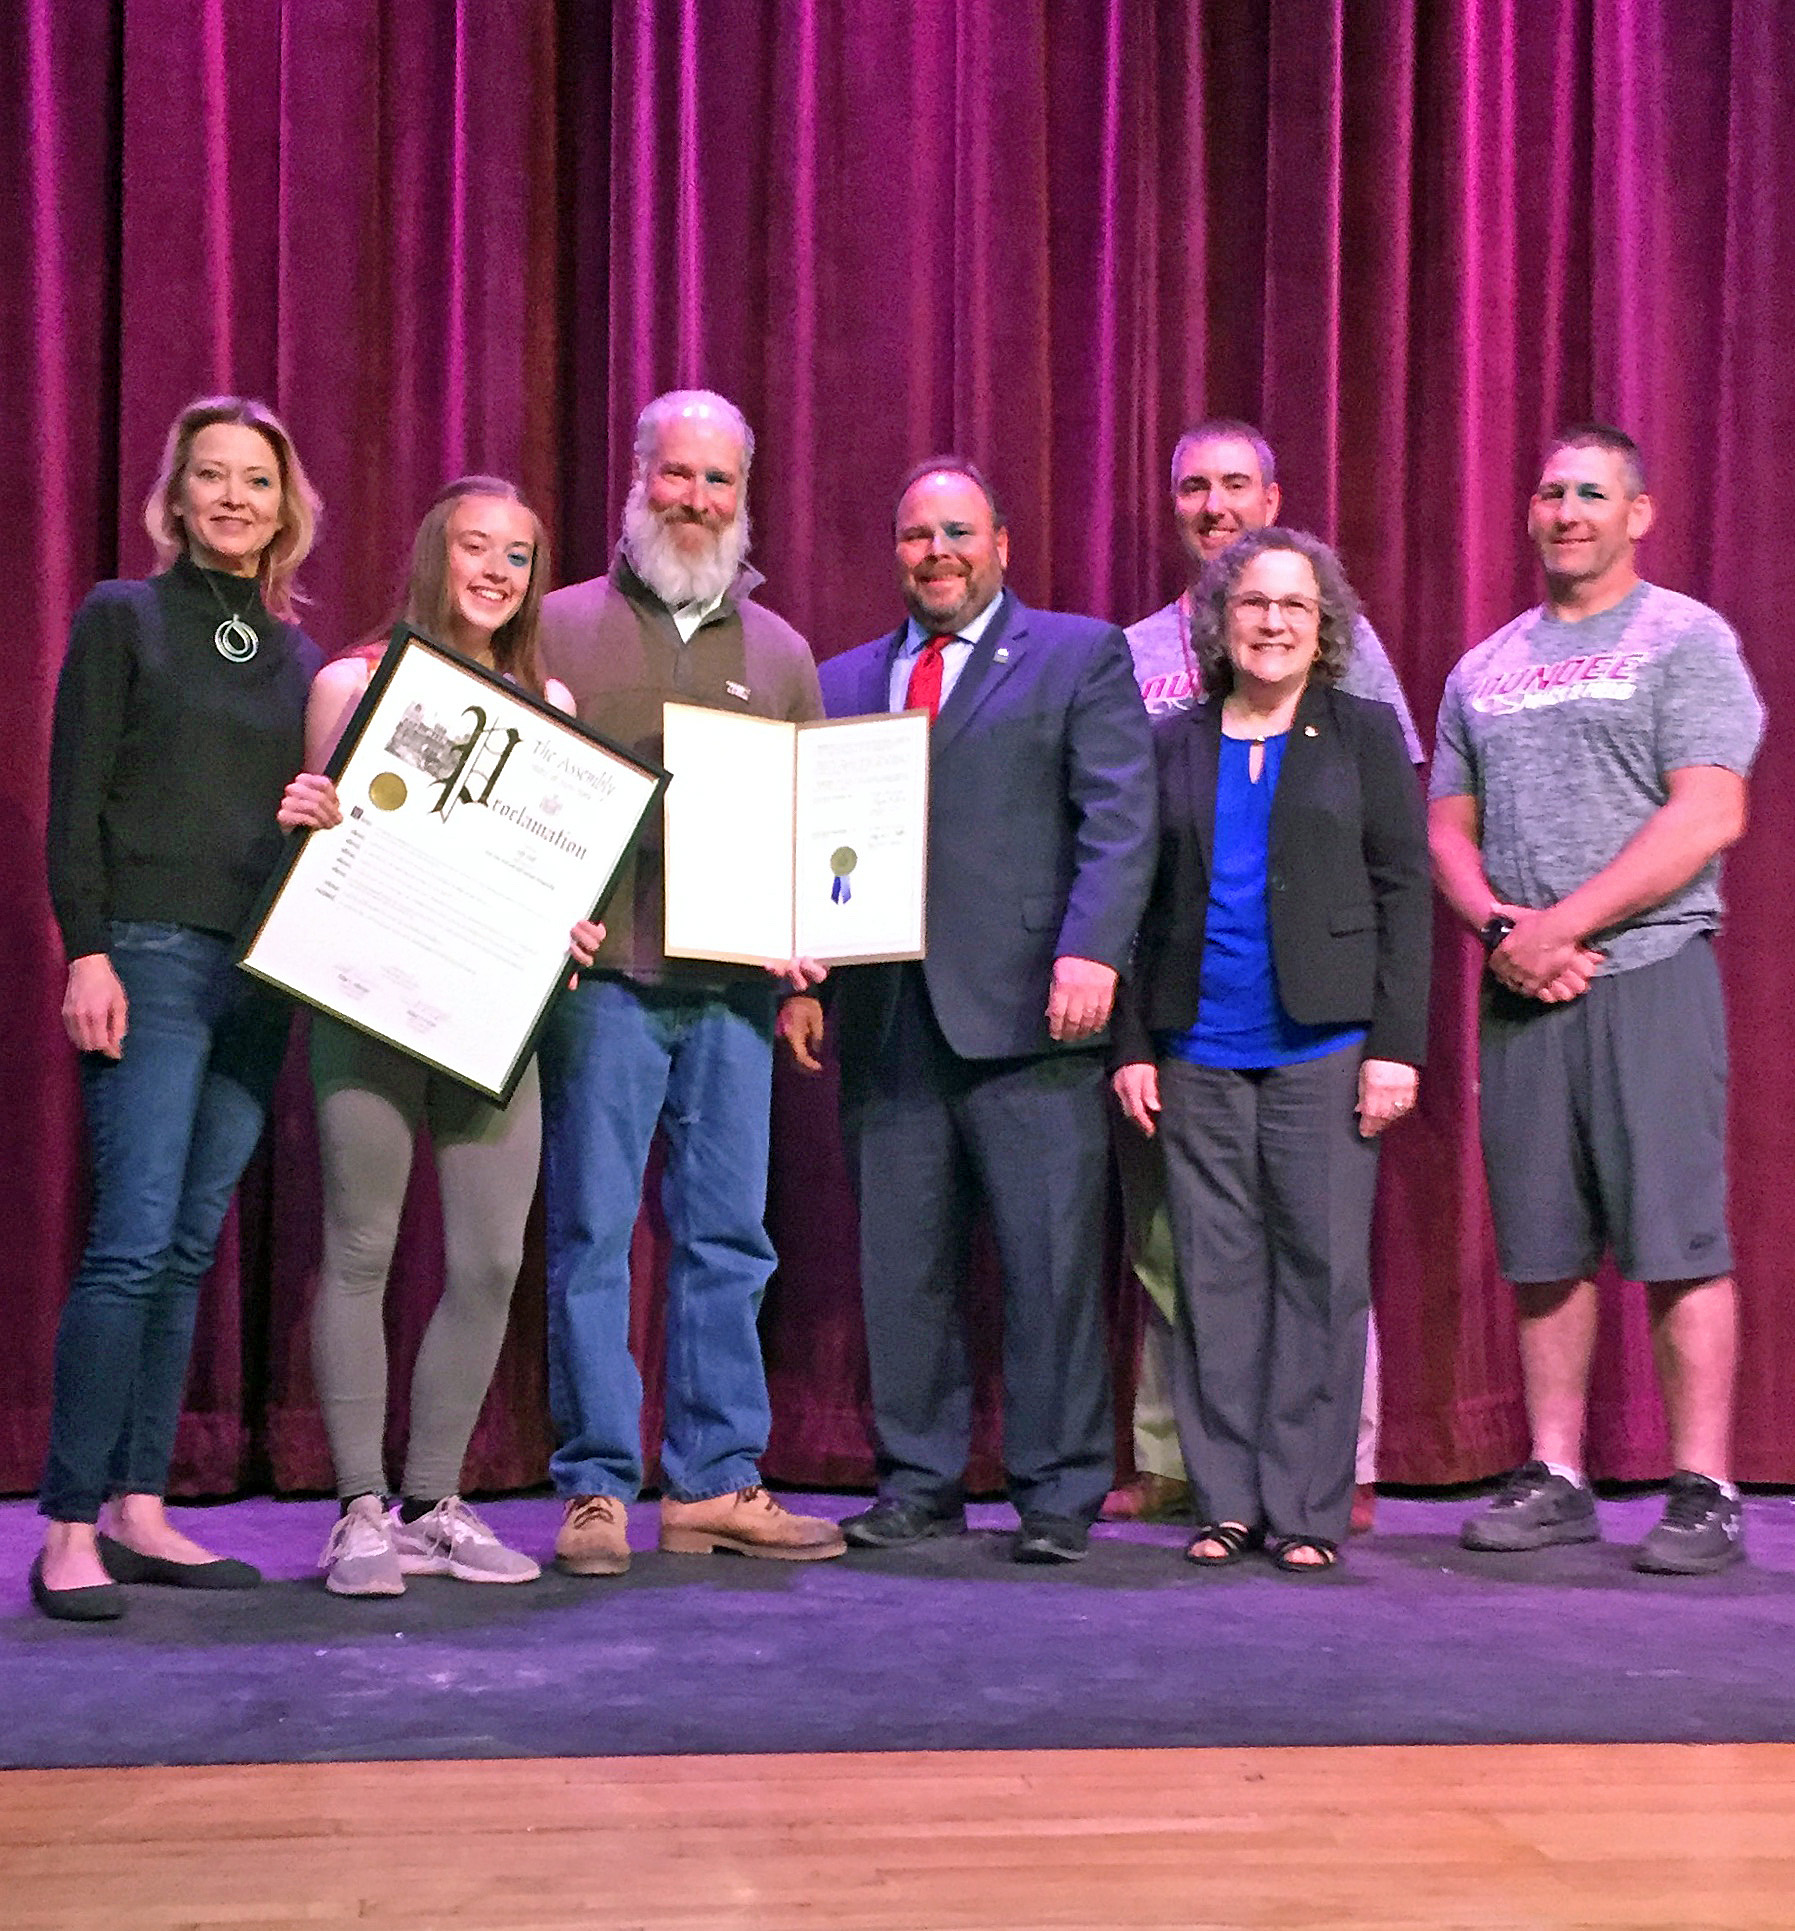 From left to right: Macy Hall, Lily's mother, Lily, Lily's father William Hall, Assemblyman Palmesano, Varsity Boys' Track Coach Scott Shepardson, Sharon Sitrin-Moore, and Varsity Girls